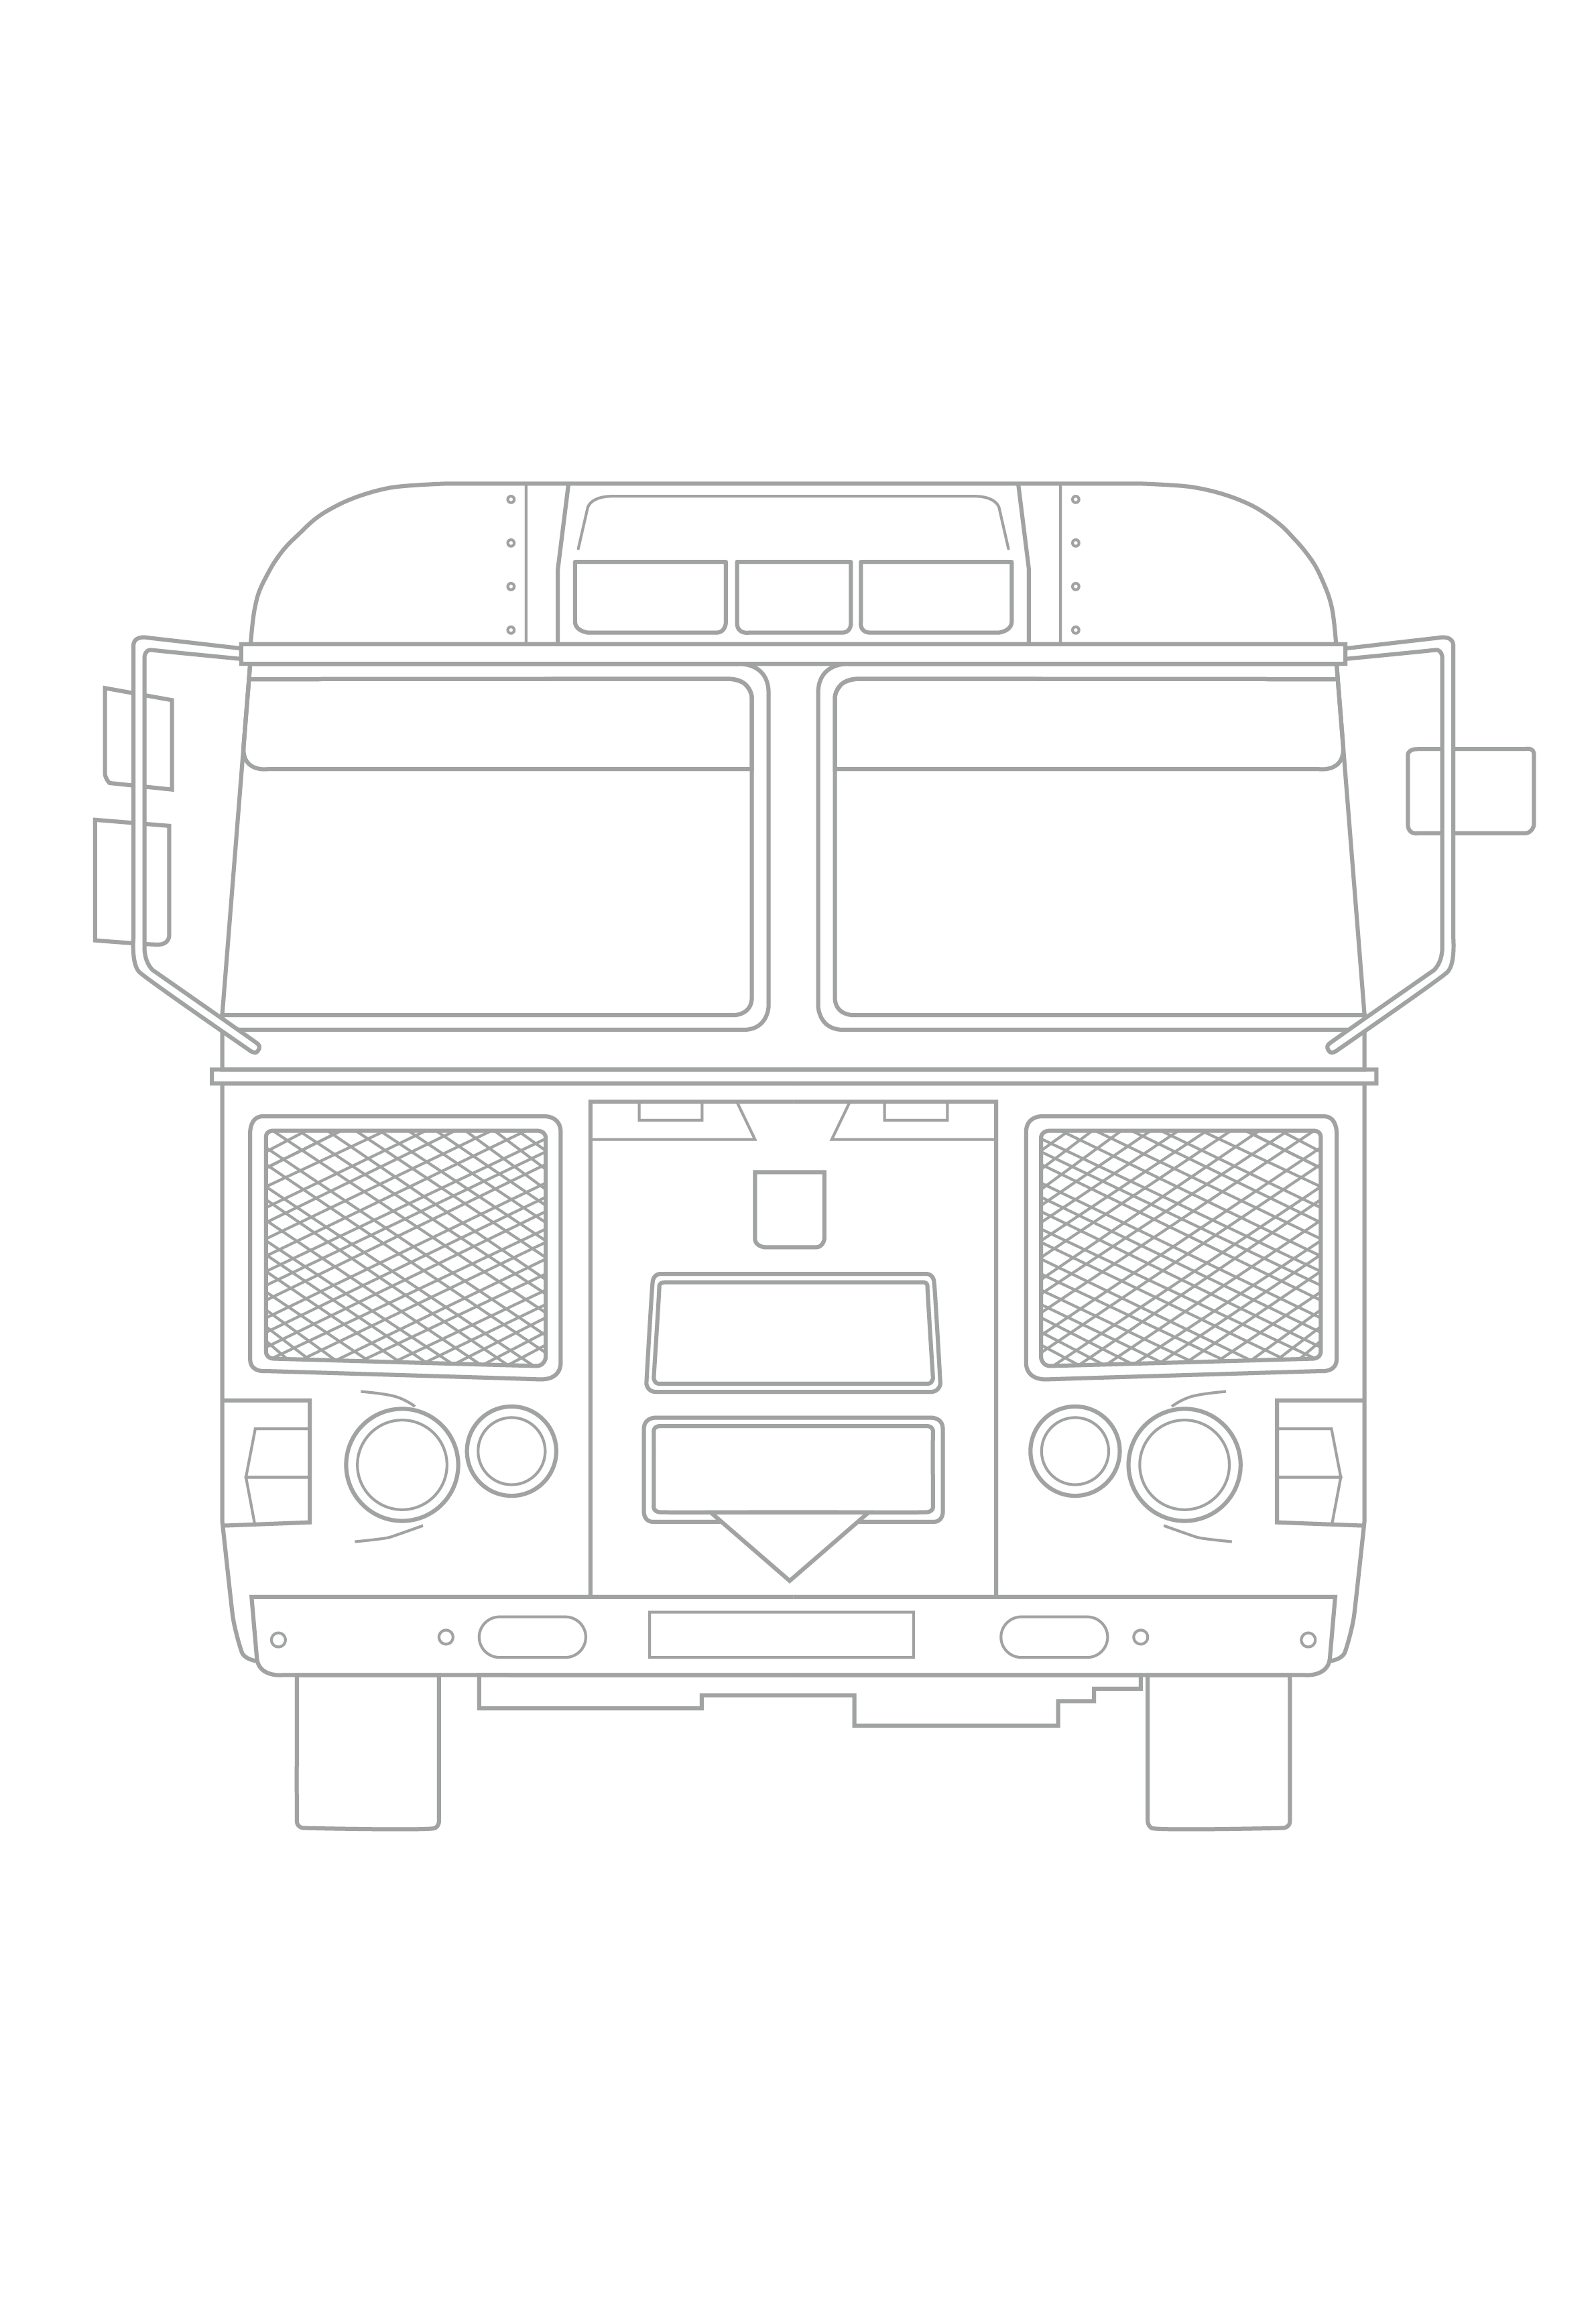 soviet-bus-outline-colouring.png